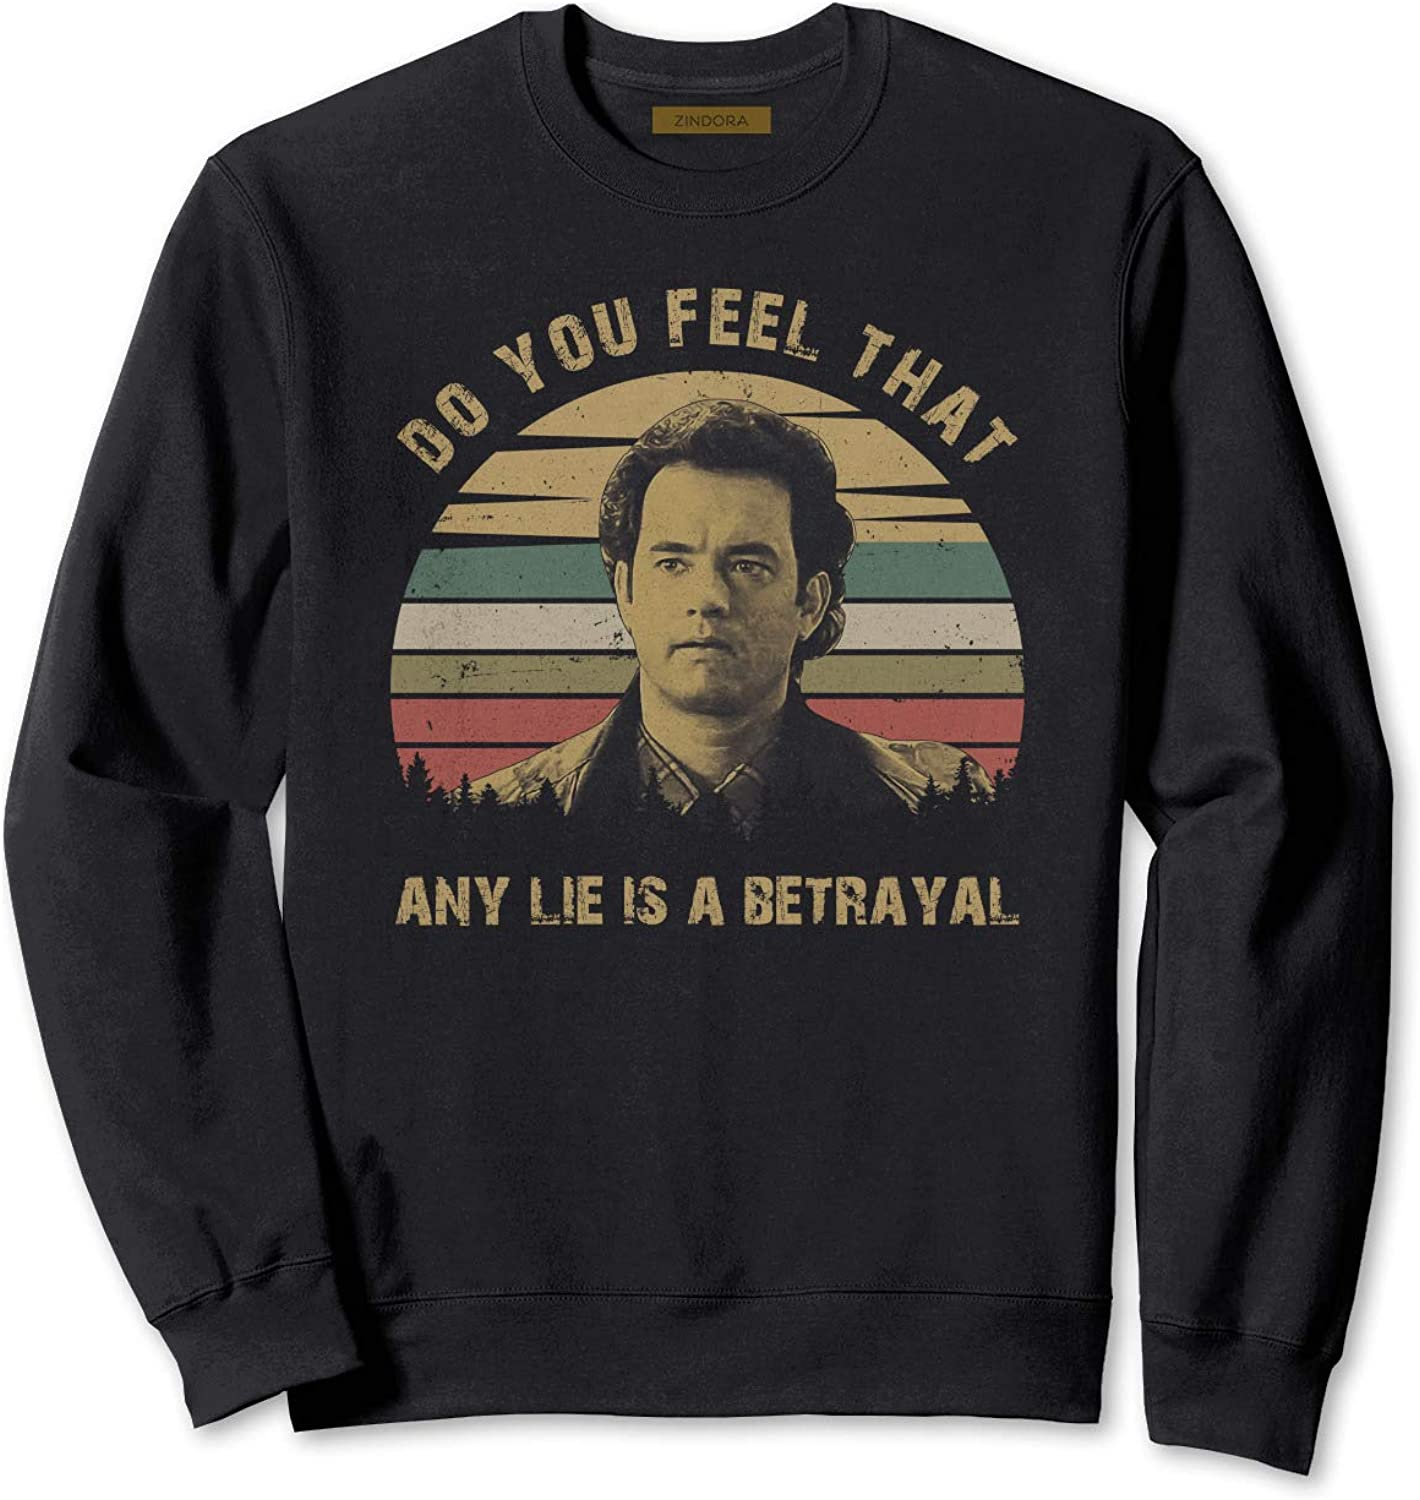 Do You Feel That Any Lie is A Betrayal Vintage T-Shirt